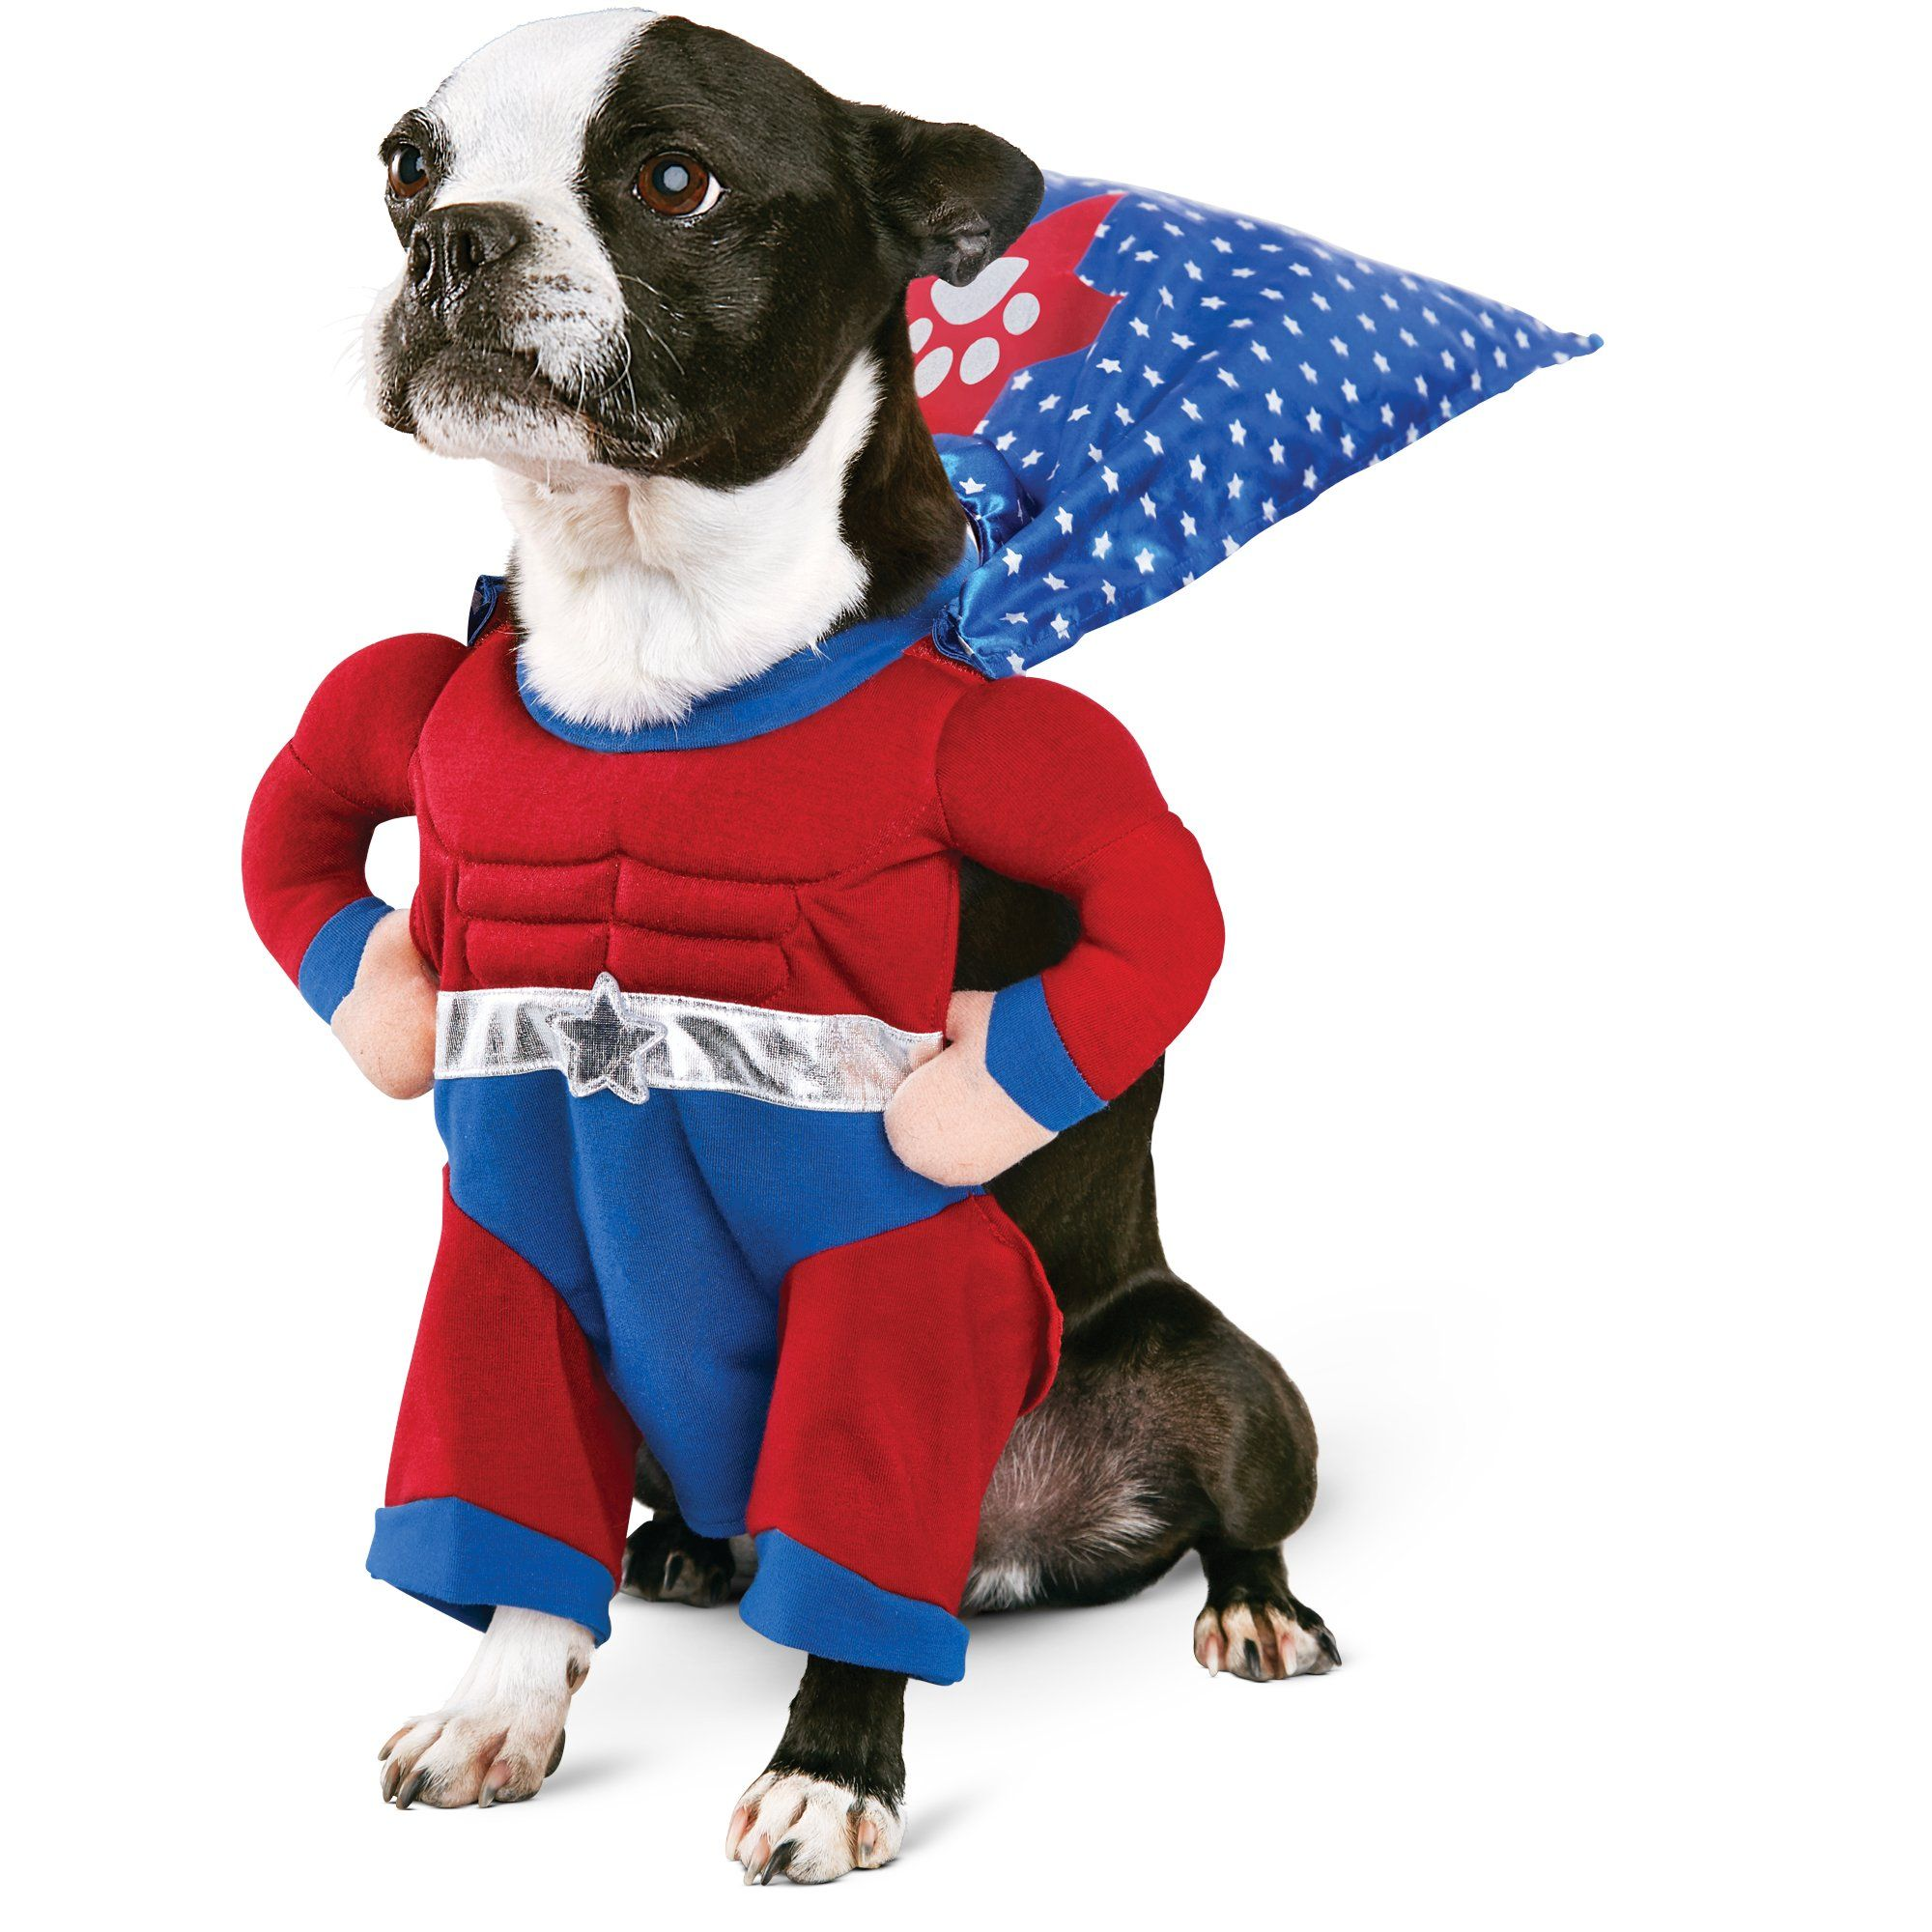 A Super Cute Super Hero Costume For Dogs And Cats This Would Be A